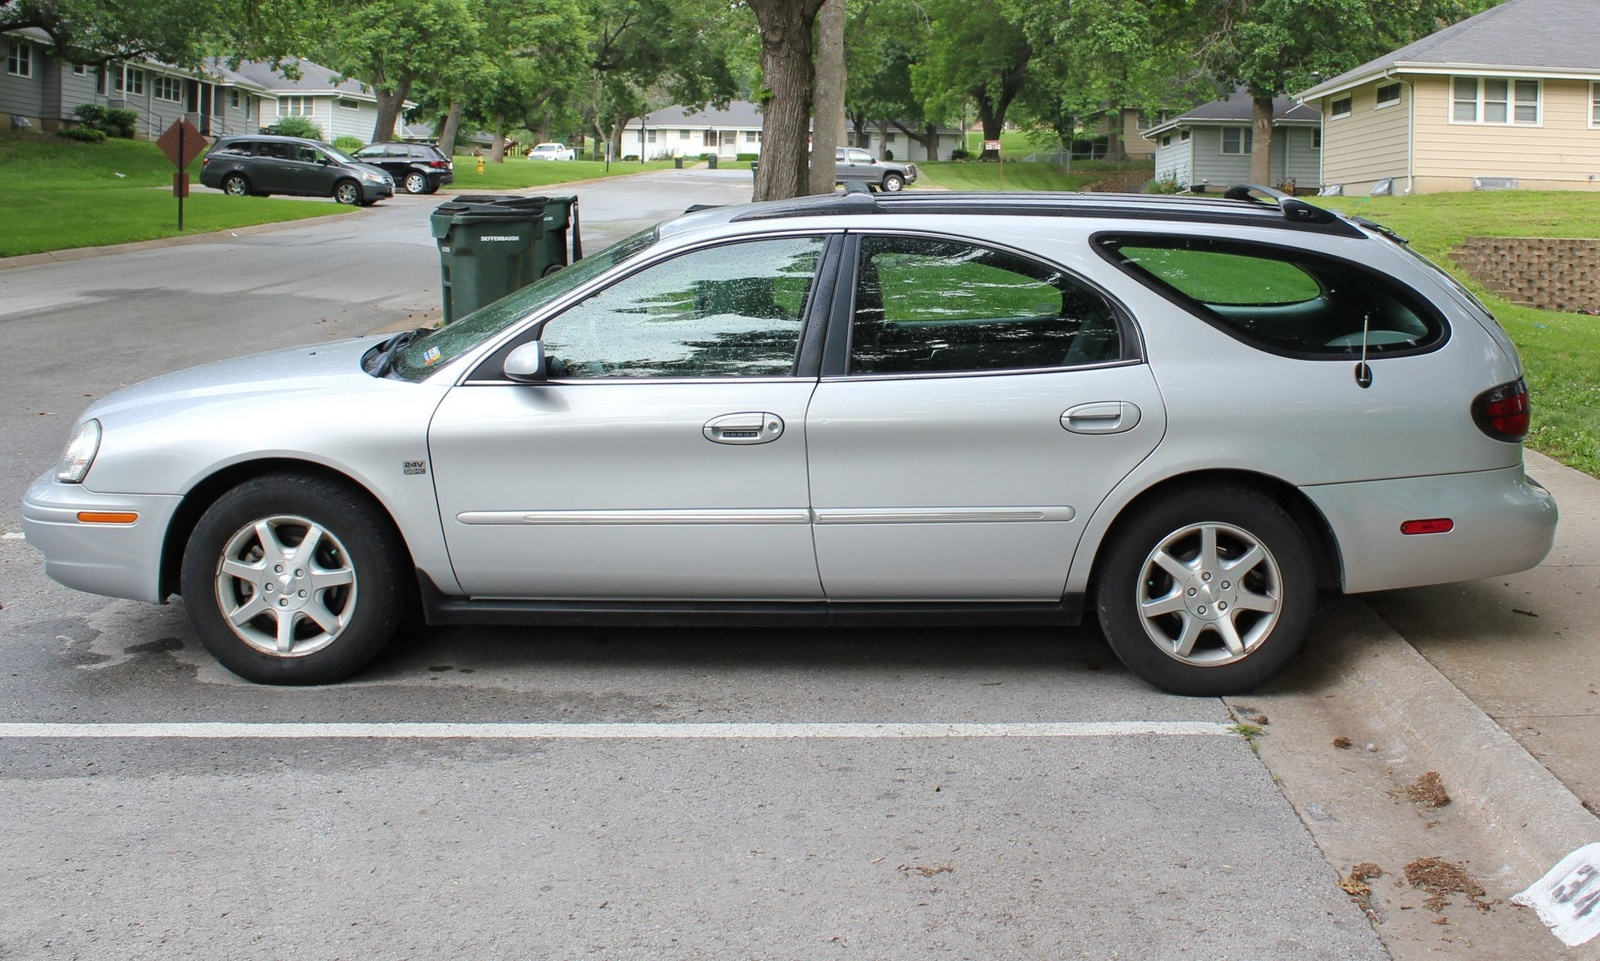 Mercury Sable Ls Wagon Pic